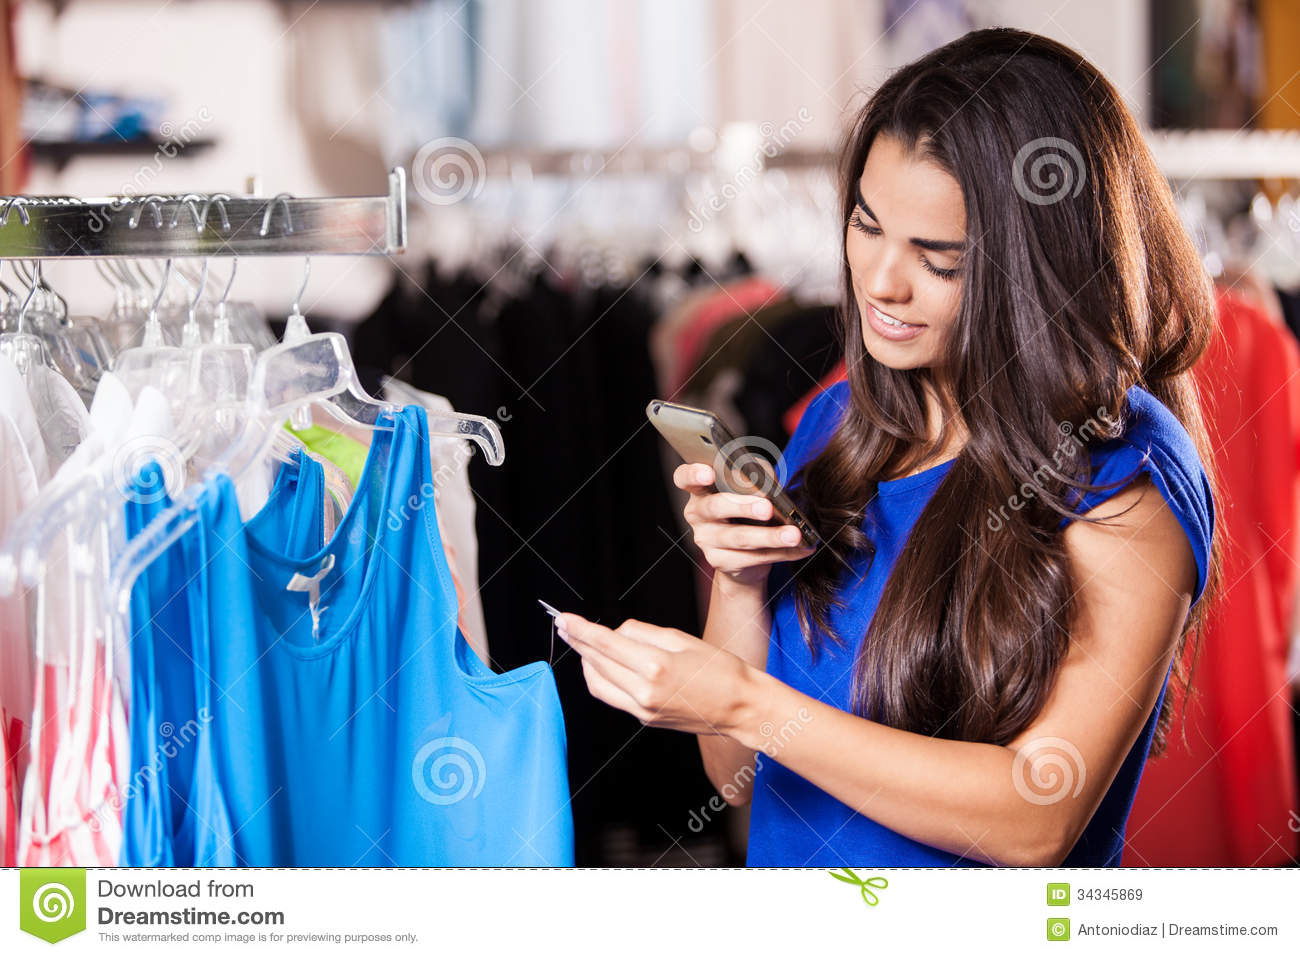 Clothing stores online. Pretty woman clothing store